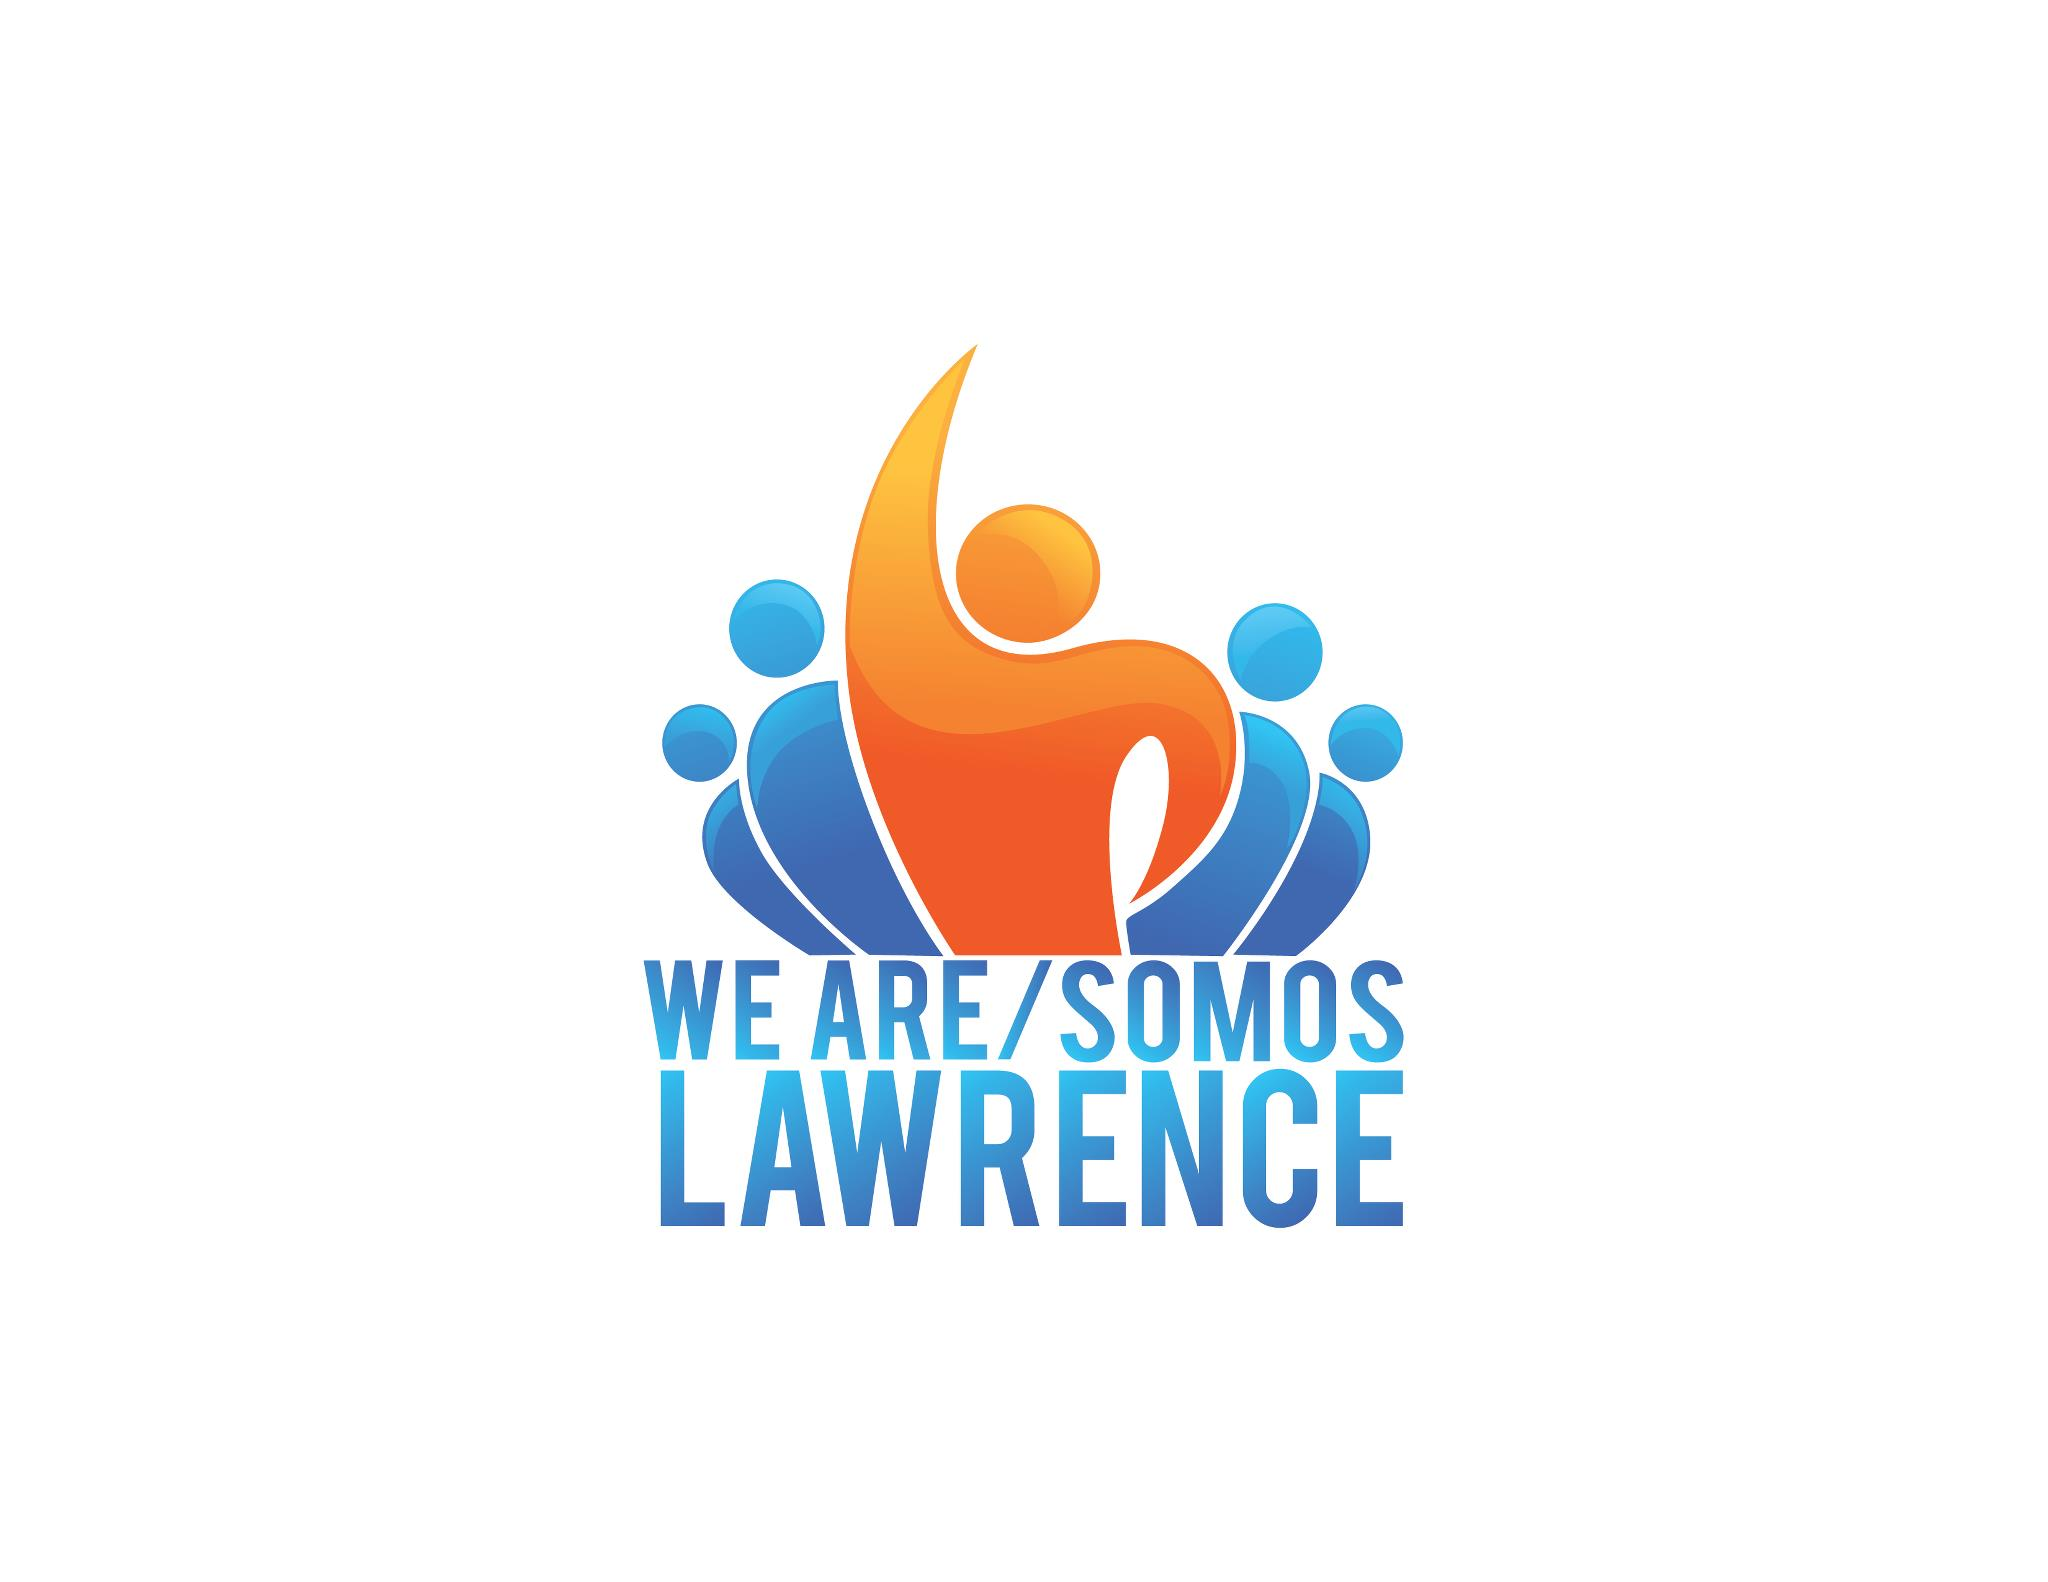 We-Are-Lawrence-Logo-Design.jpg